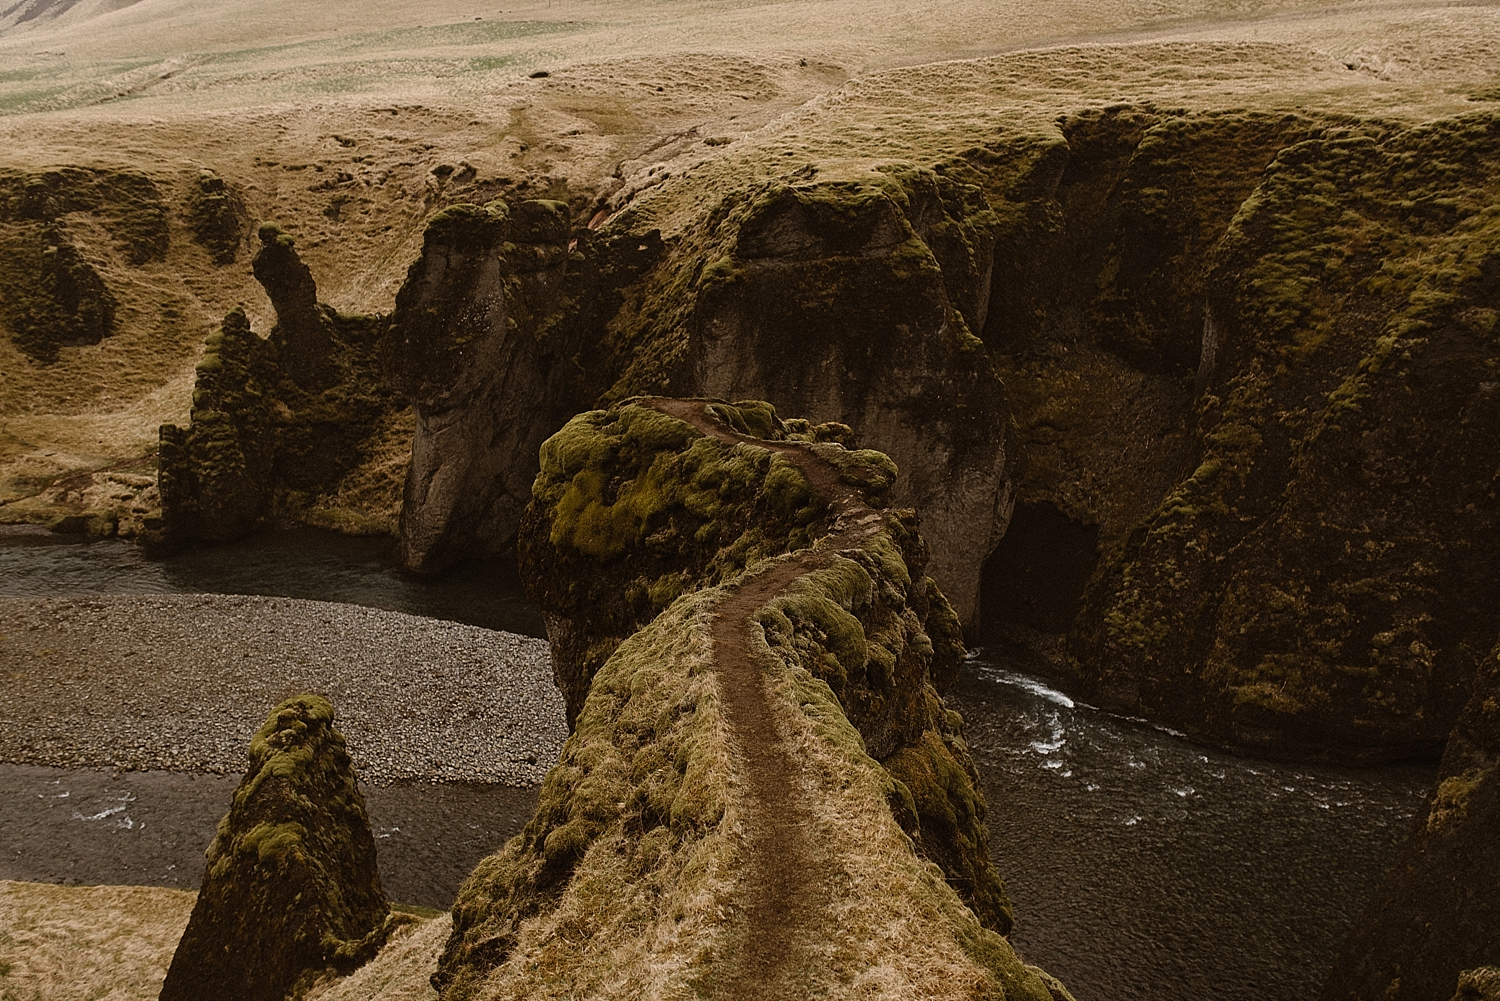 Fjadrargljufur Canyon is riddled with epic trails above the water. Julie and Tim found their adventurous side and began wandering down with the wind at their backs. Photos by intimate wedding photographer Maddie Mae.